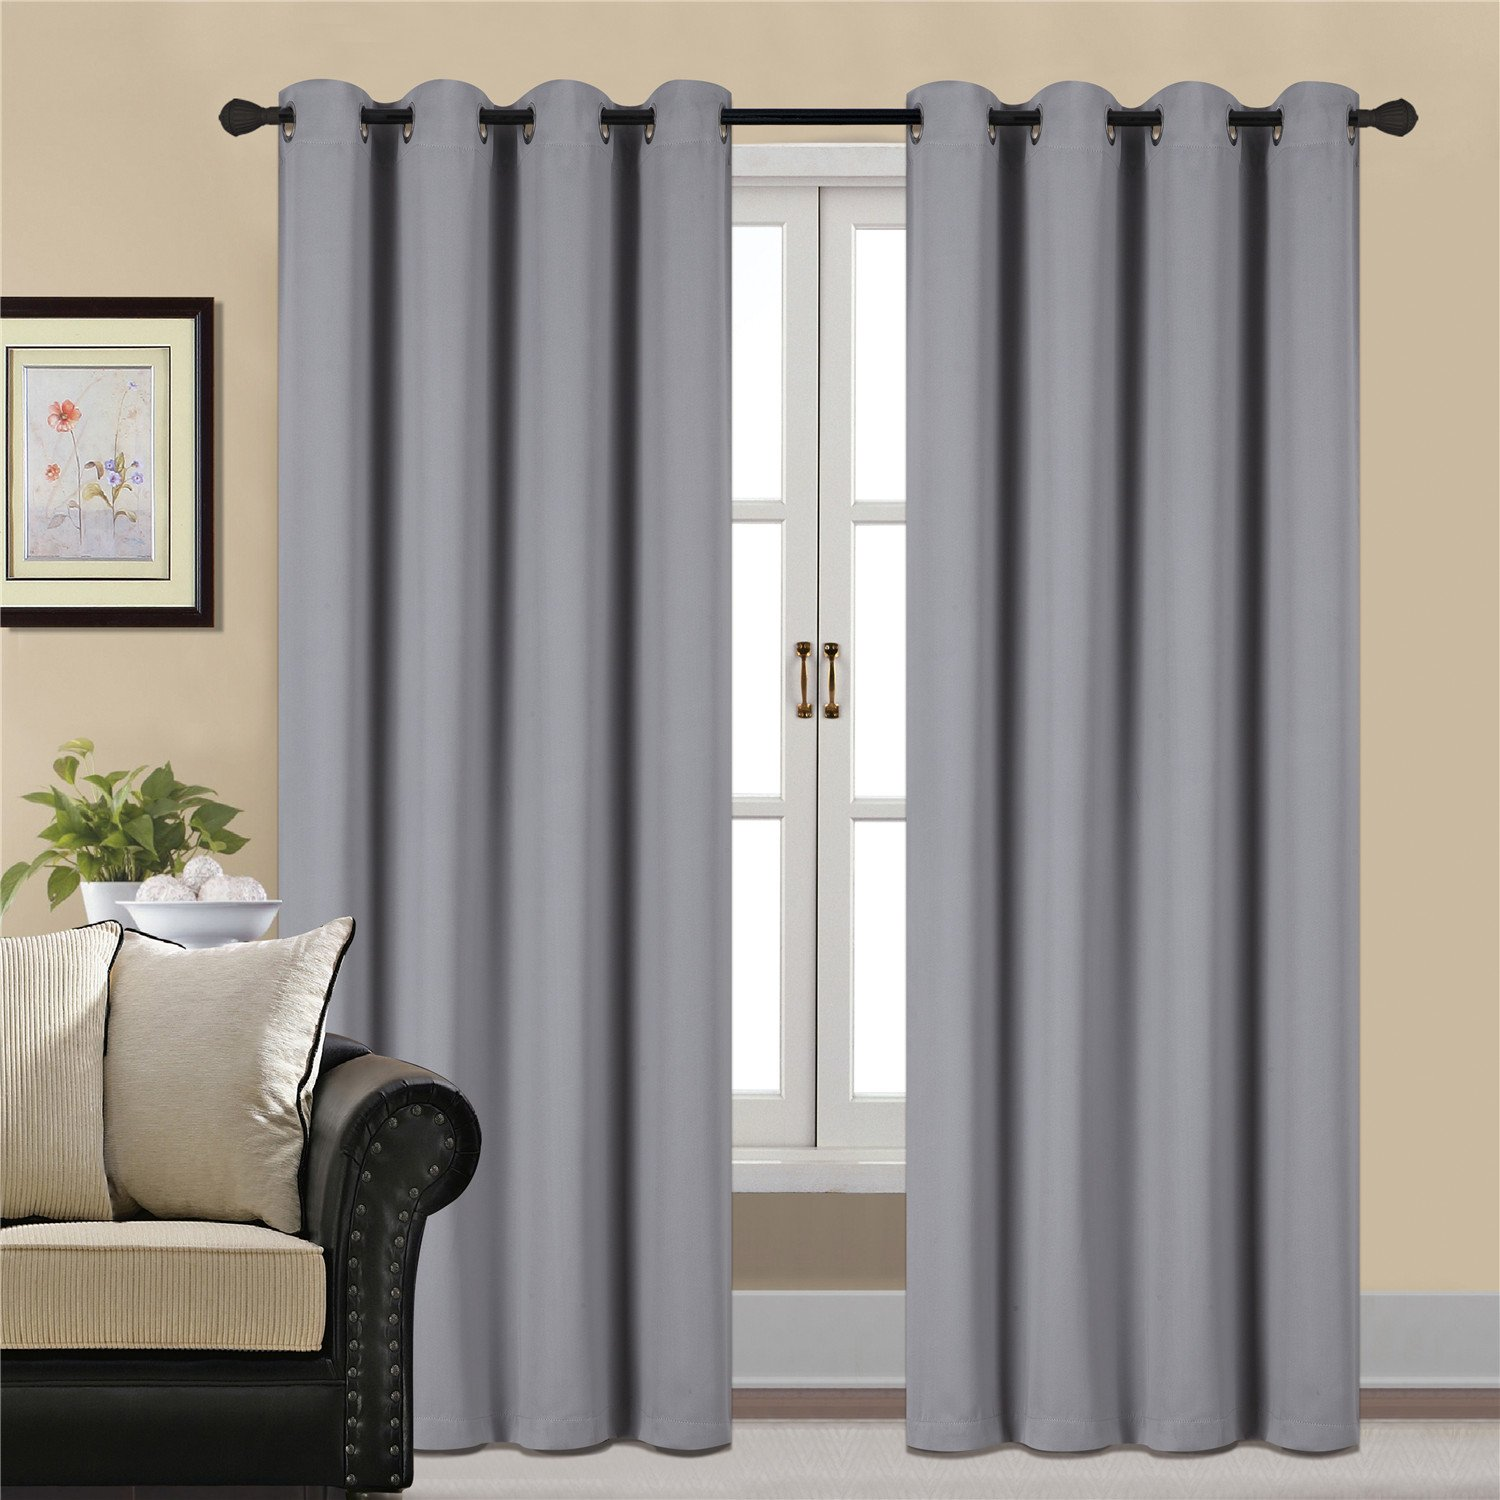 Blackout Curtains Thermal Insulated Grey For Bedroom